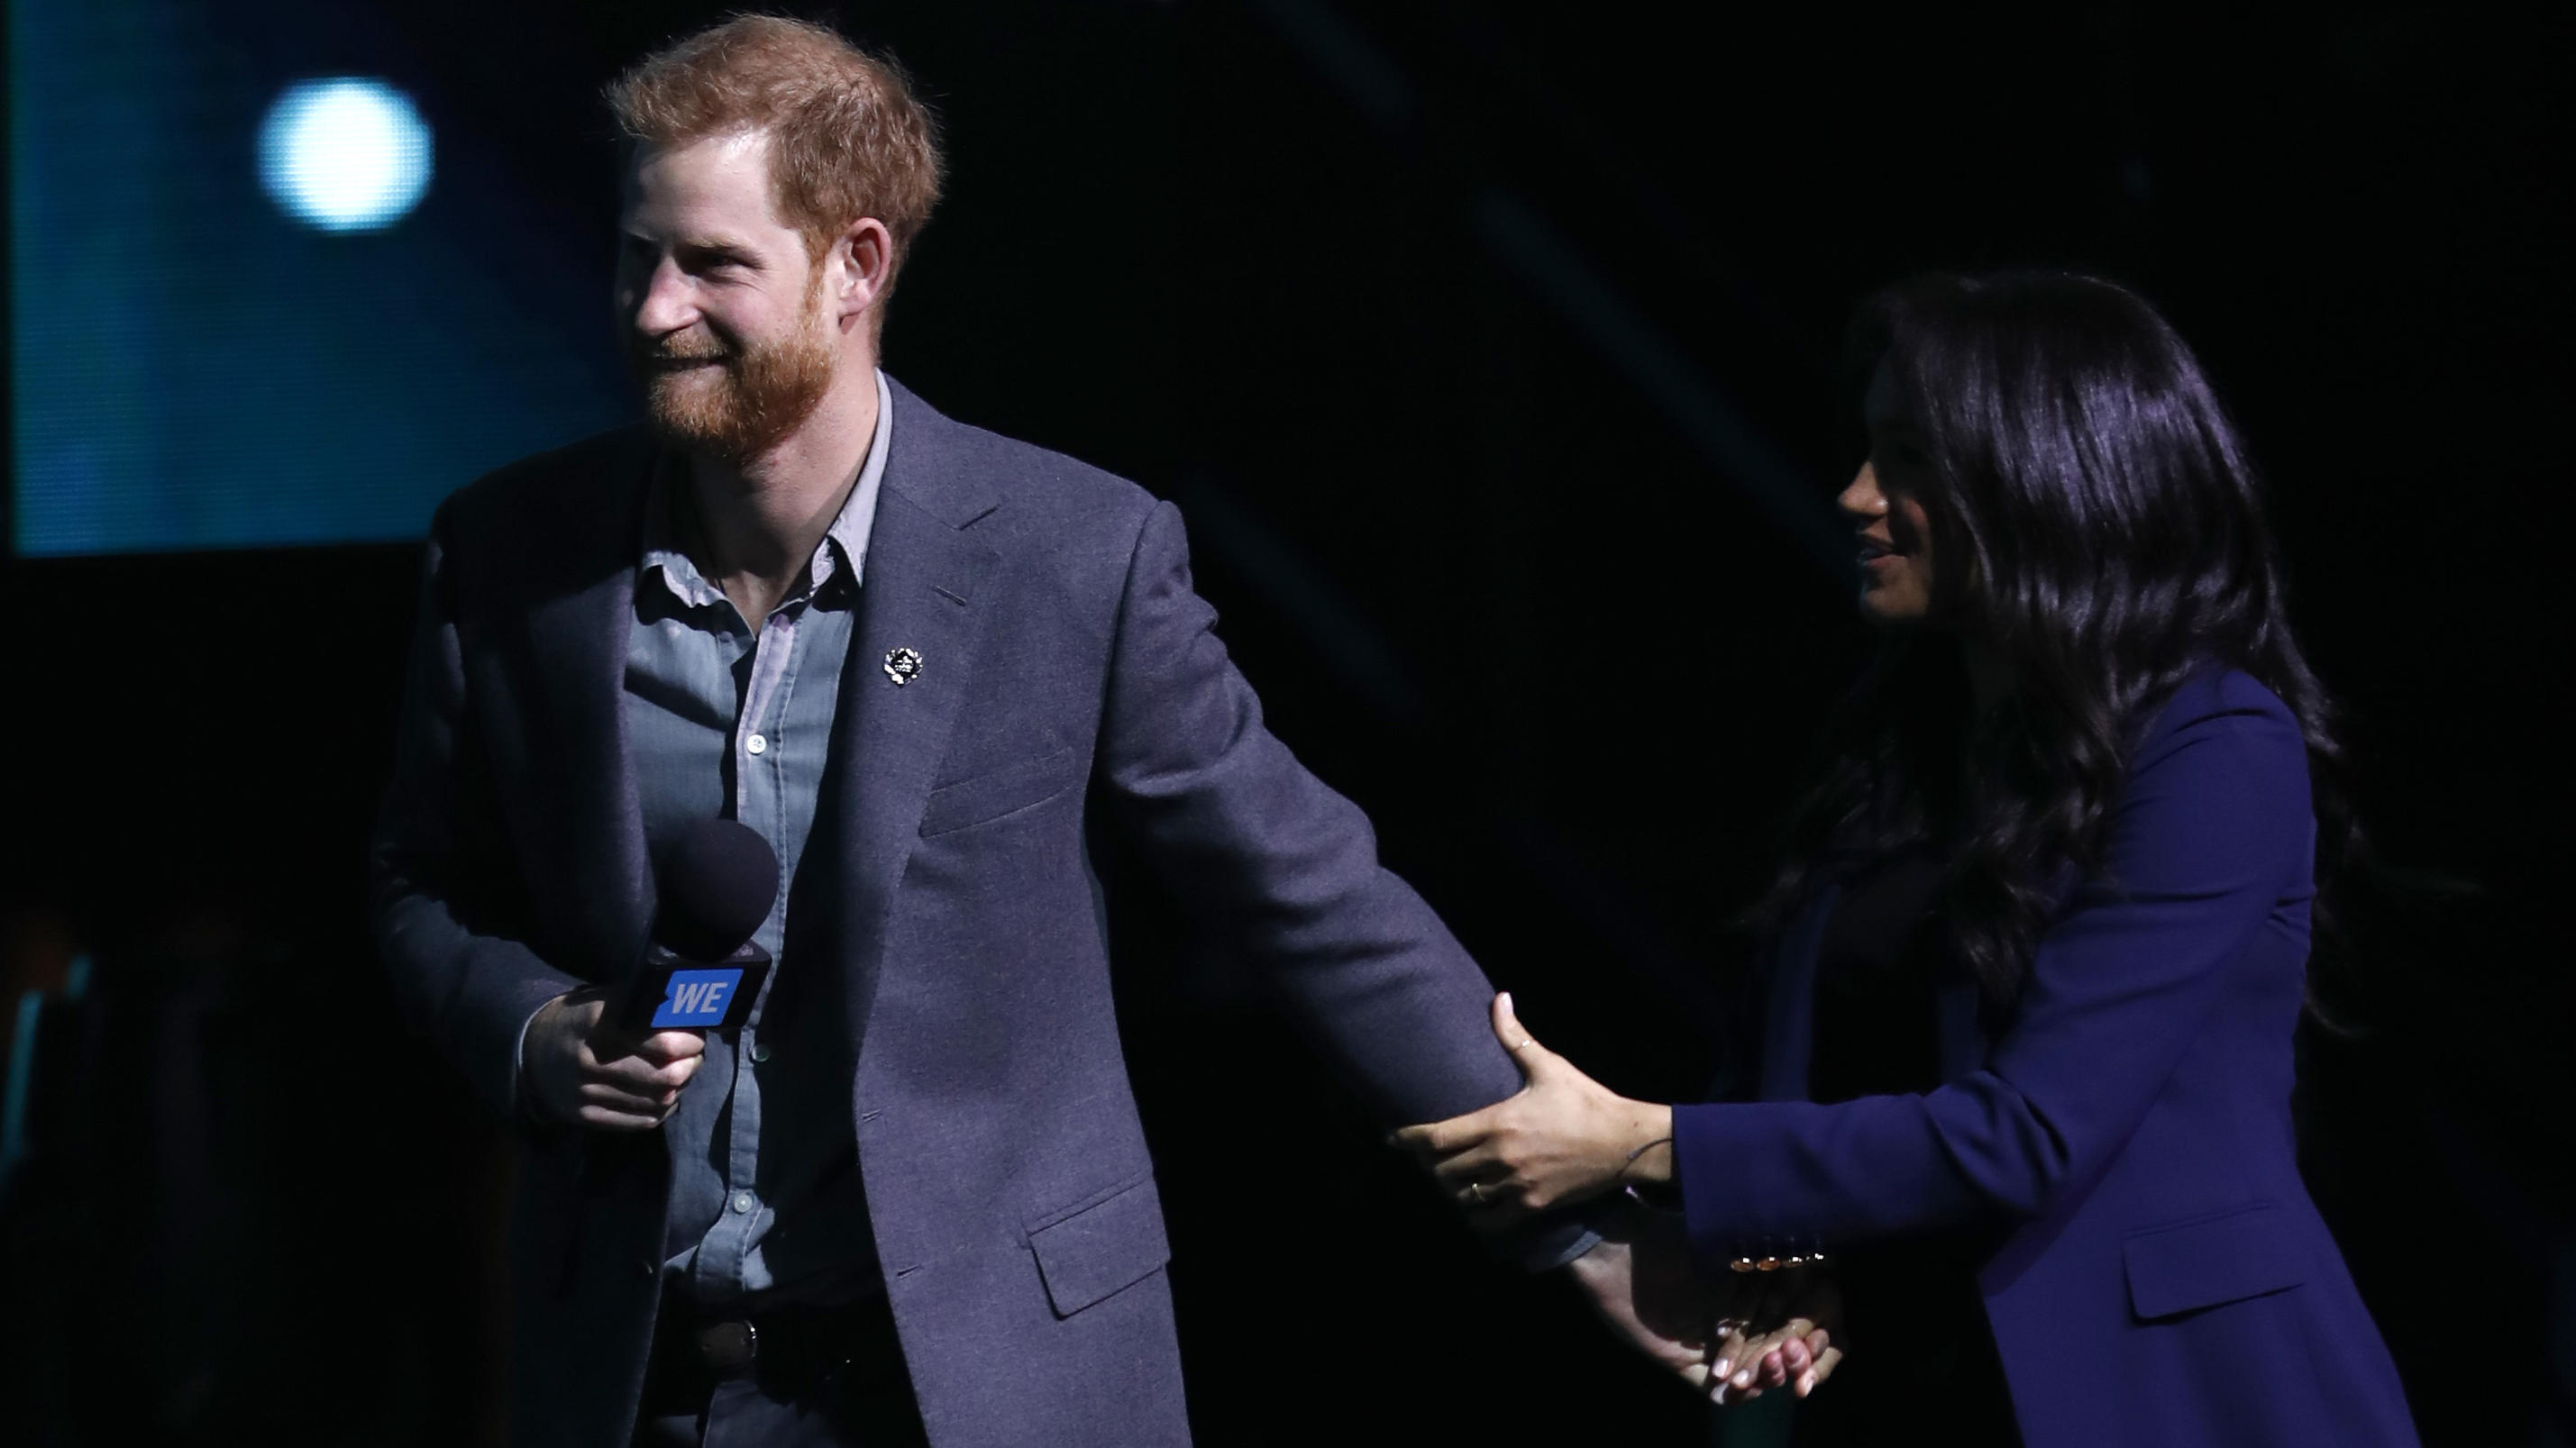 Prinz Harry und Herzogin Meghan beim WE Day in London, März 2019